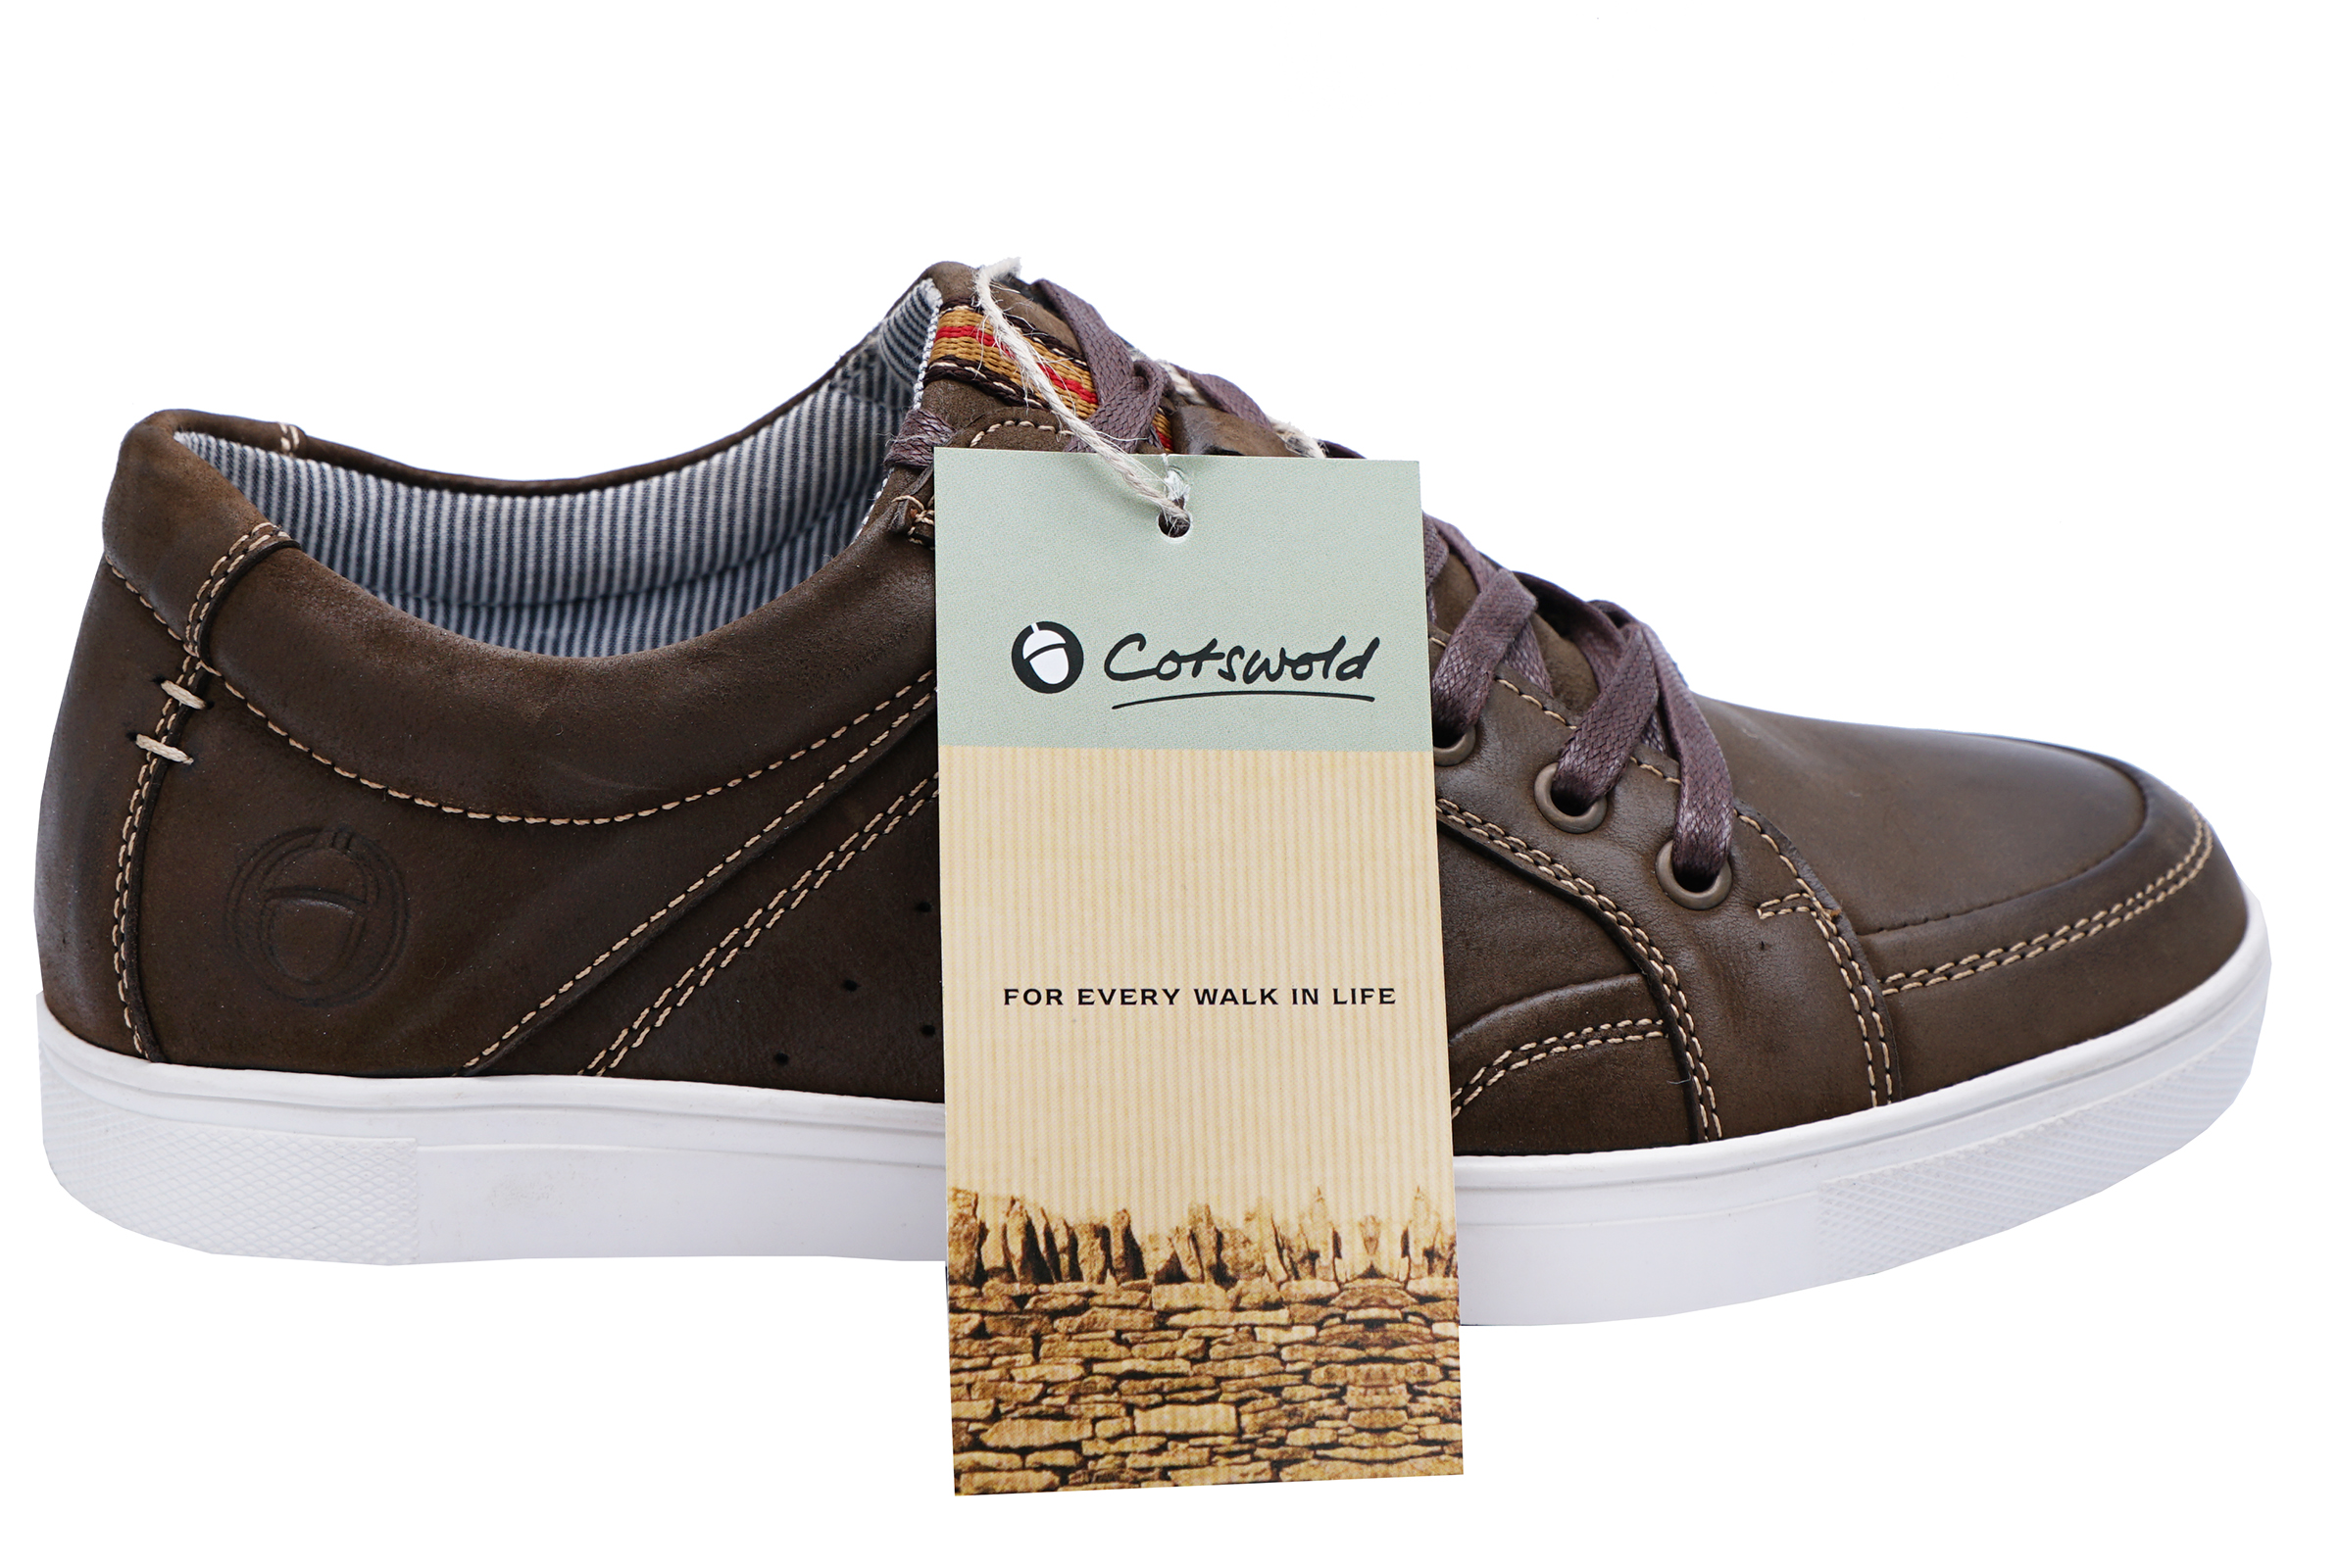 MENS-BROWN-LEATHER-COTSWOLD-LACE-UP-CASUAL-TRAINERS-PUMPS-COMFY-SHOES-UK-10-12 thumbnail 6